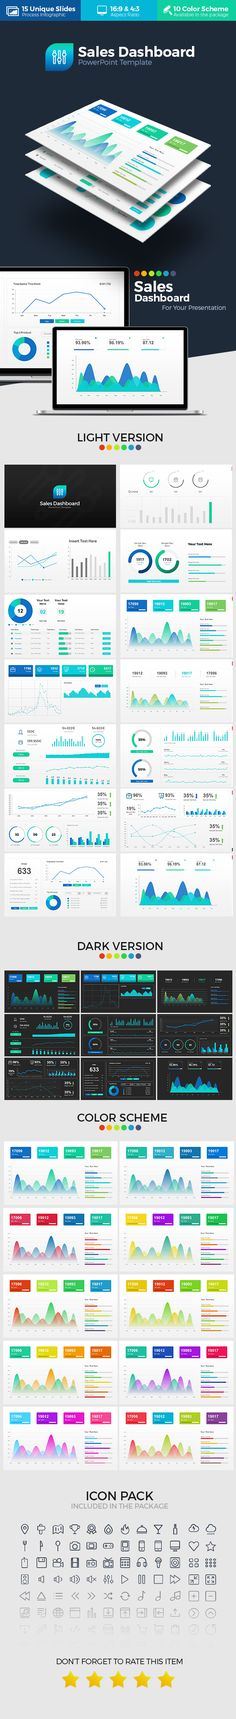 Sales Dashboard PowerPoint Template #powerpoint #presentation Download : https://graphicriver.net/item/sales-dashboard-powerpoint-template/17728338?s_rank=4?ref=BrandEarth